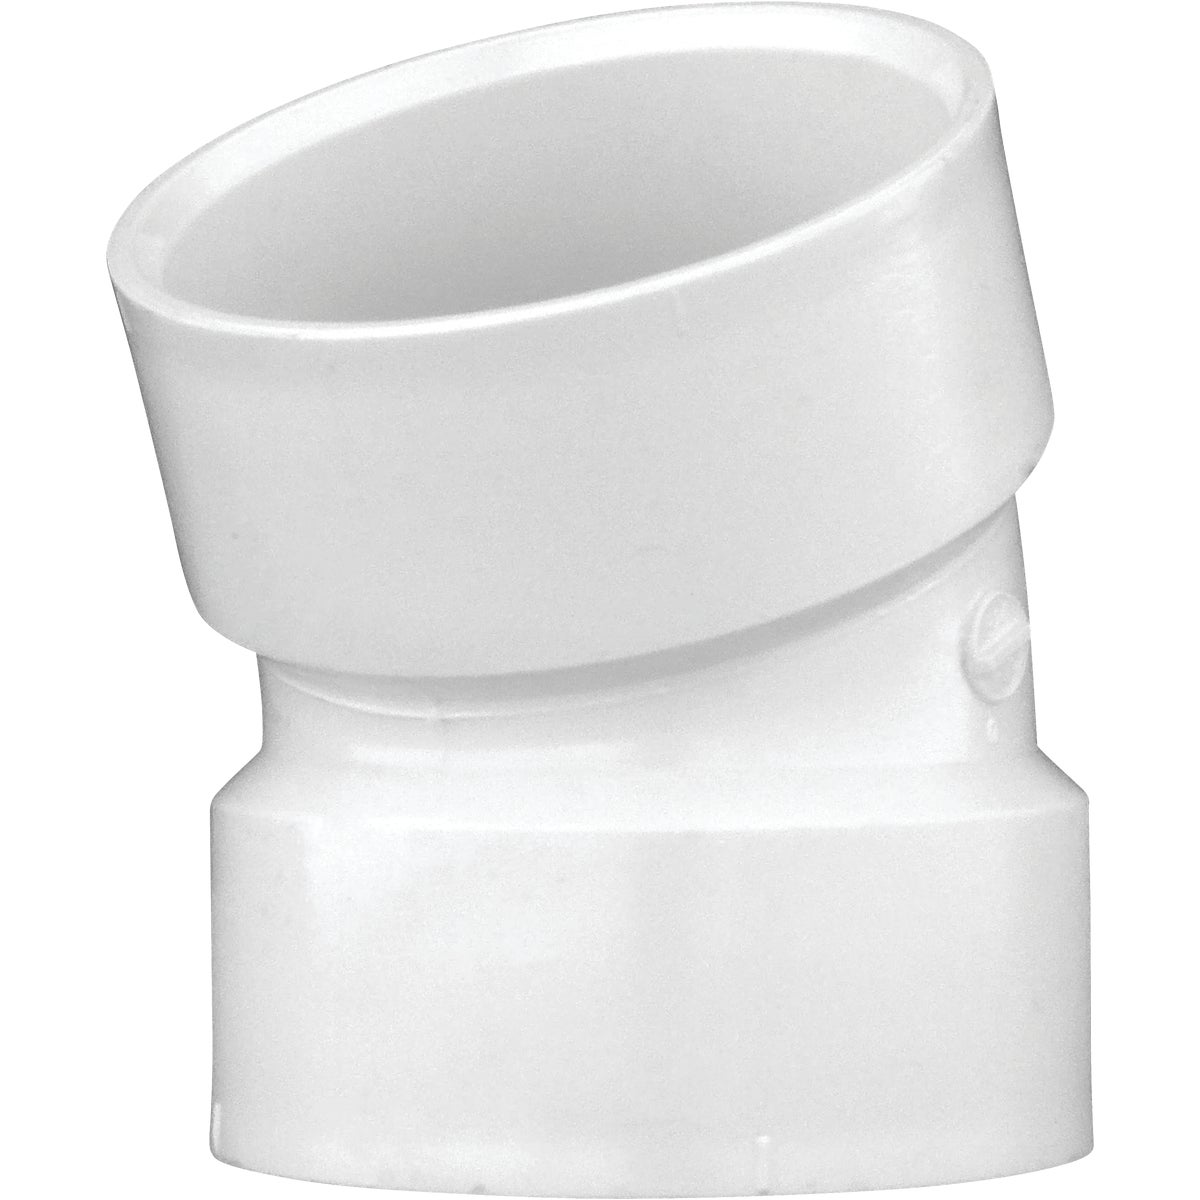 "3"" 22-1/2D PVC-DWV ELBOW - 70830 by Genova Inc  Pvc Dwv"